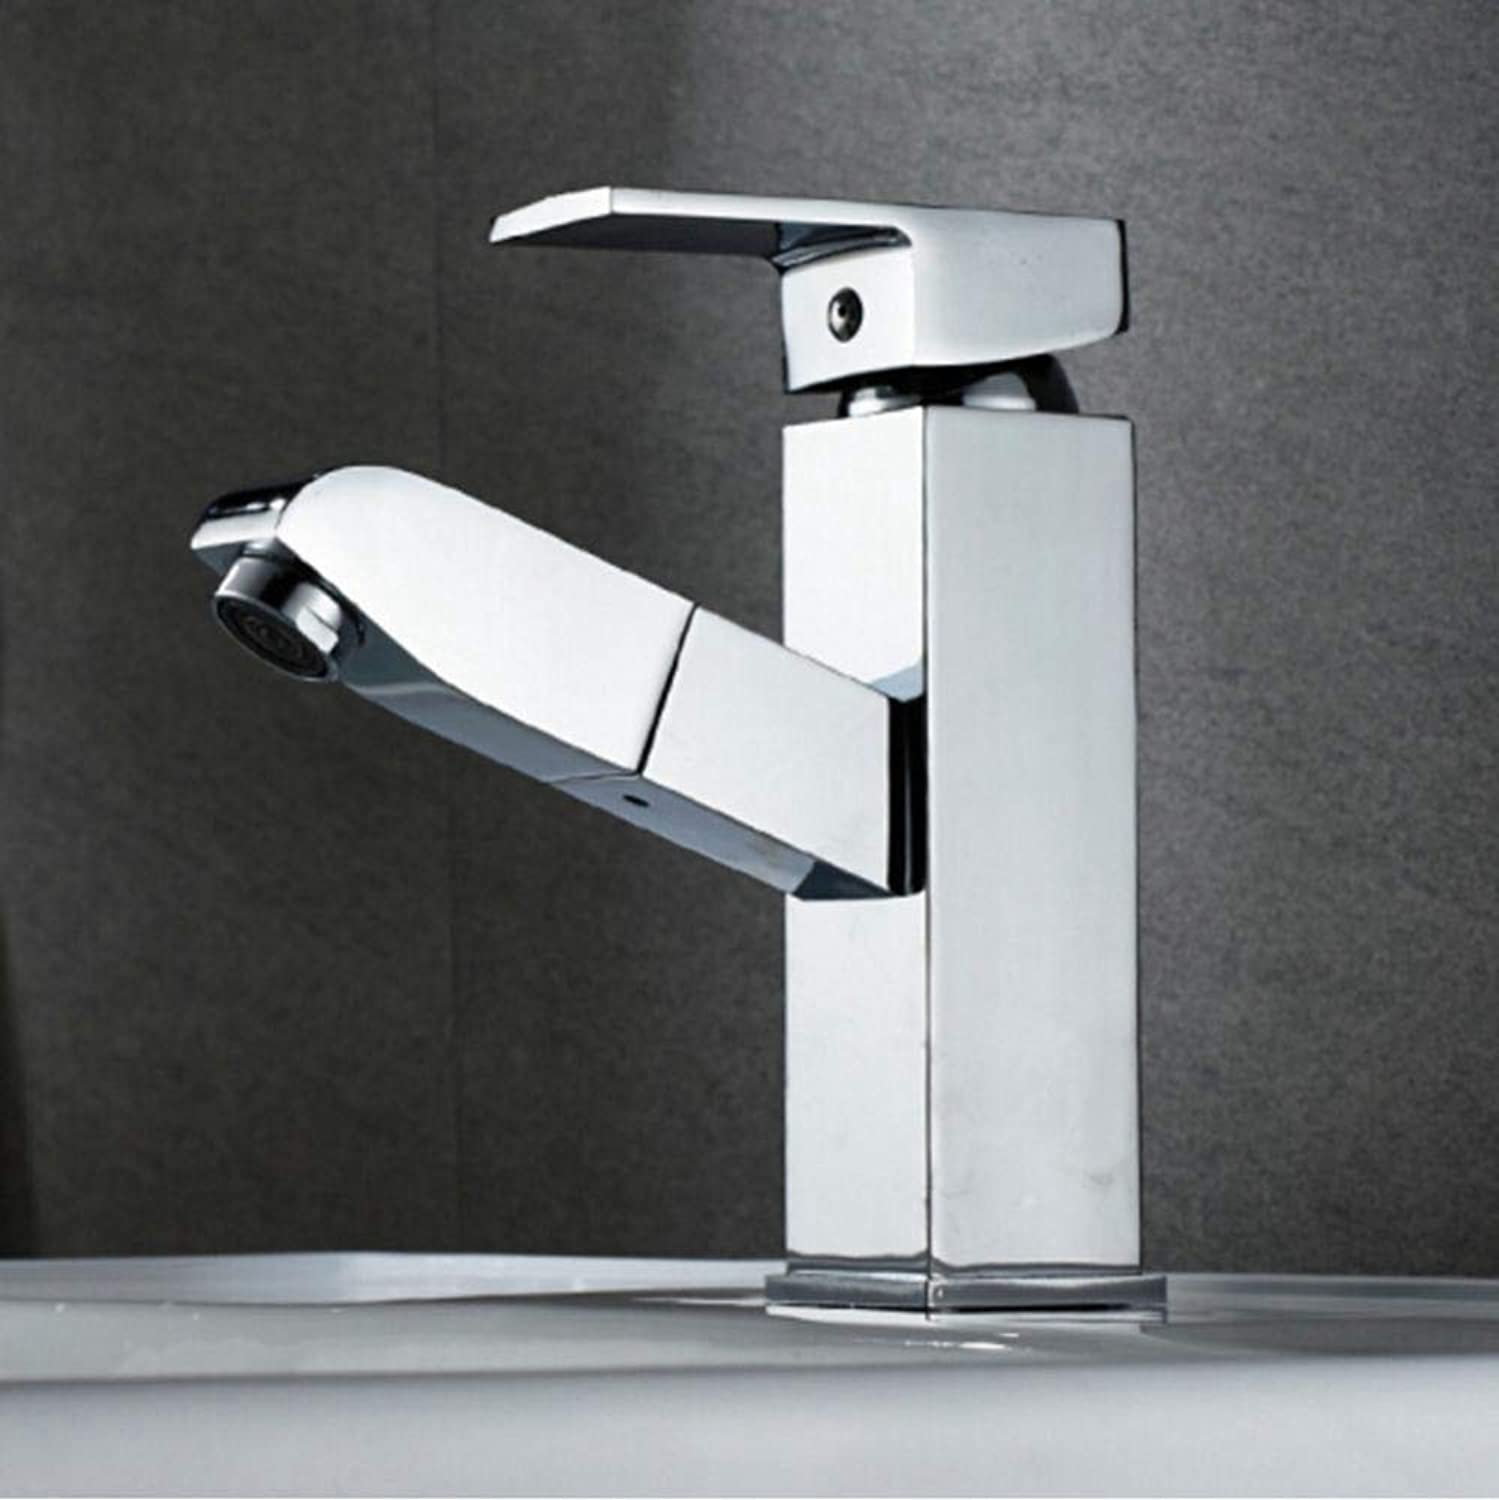 Olydmsky Kitchen tap Pull Out,All Copper Quadrilateral Pull Faucet hot and Cold Bathroom Cabinet Basin Single Cold Telescopic washbasin Faucet